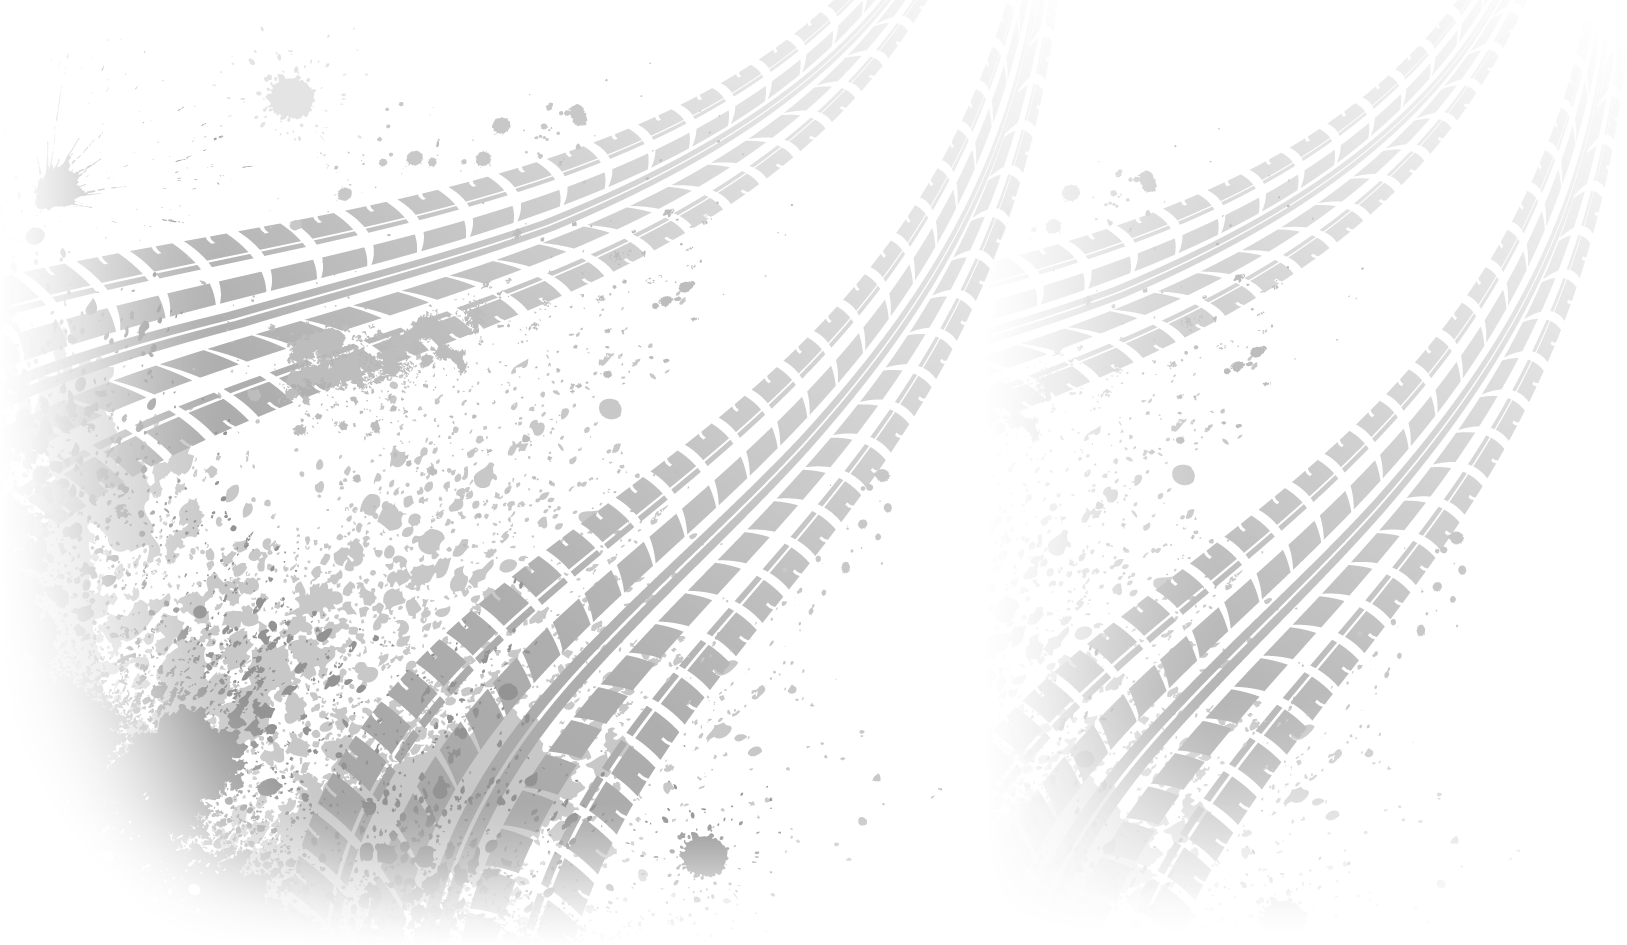 Tire track png hd transparent tire track hd png images - Coupe vent terrasse transparent ...